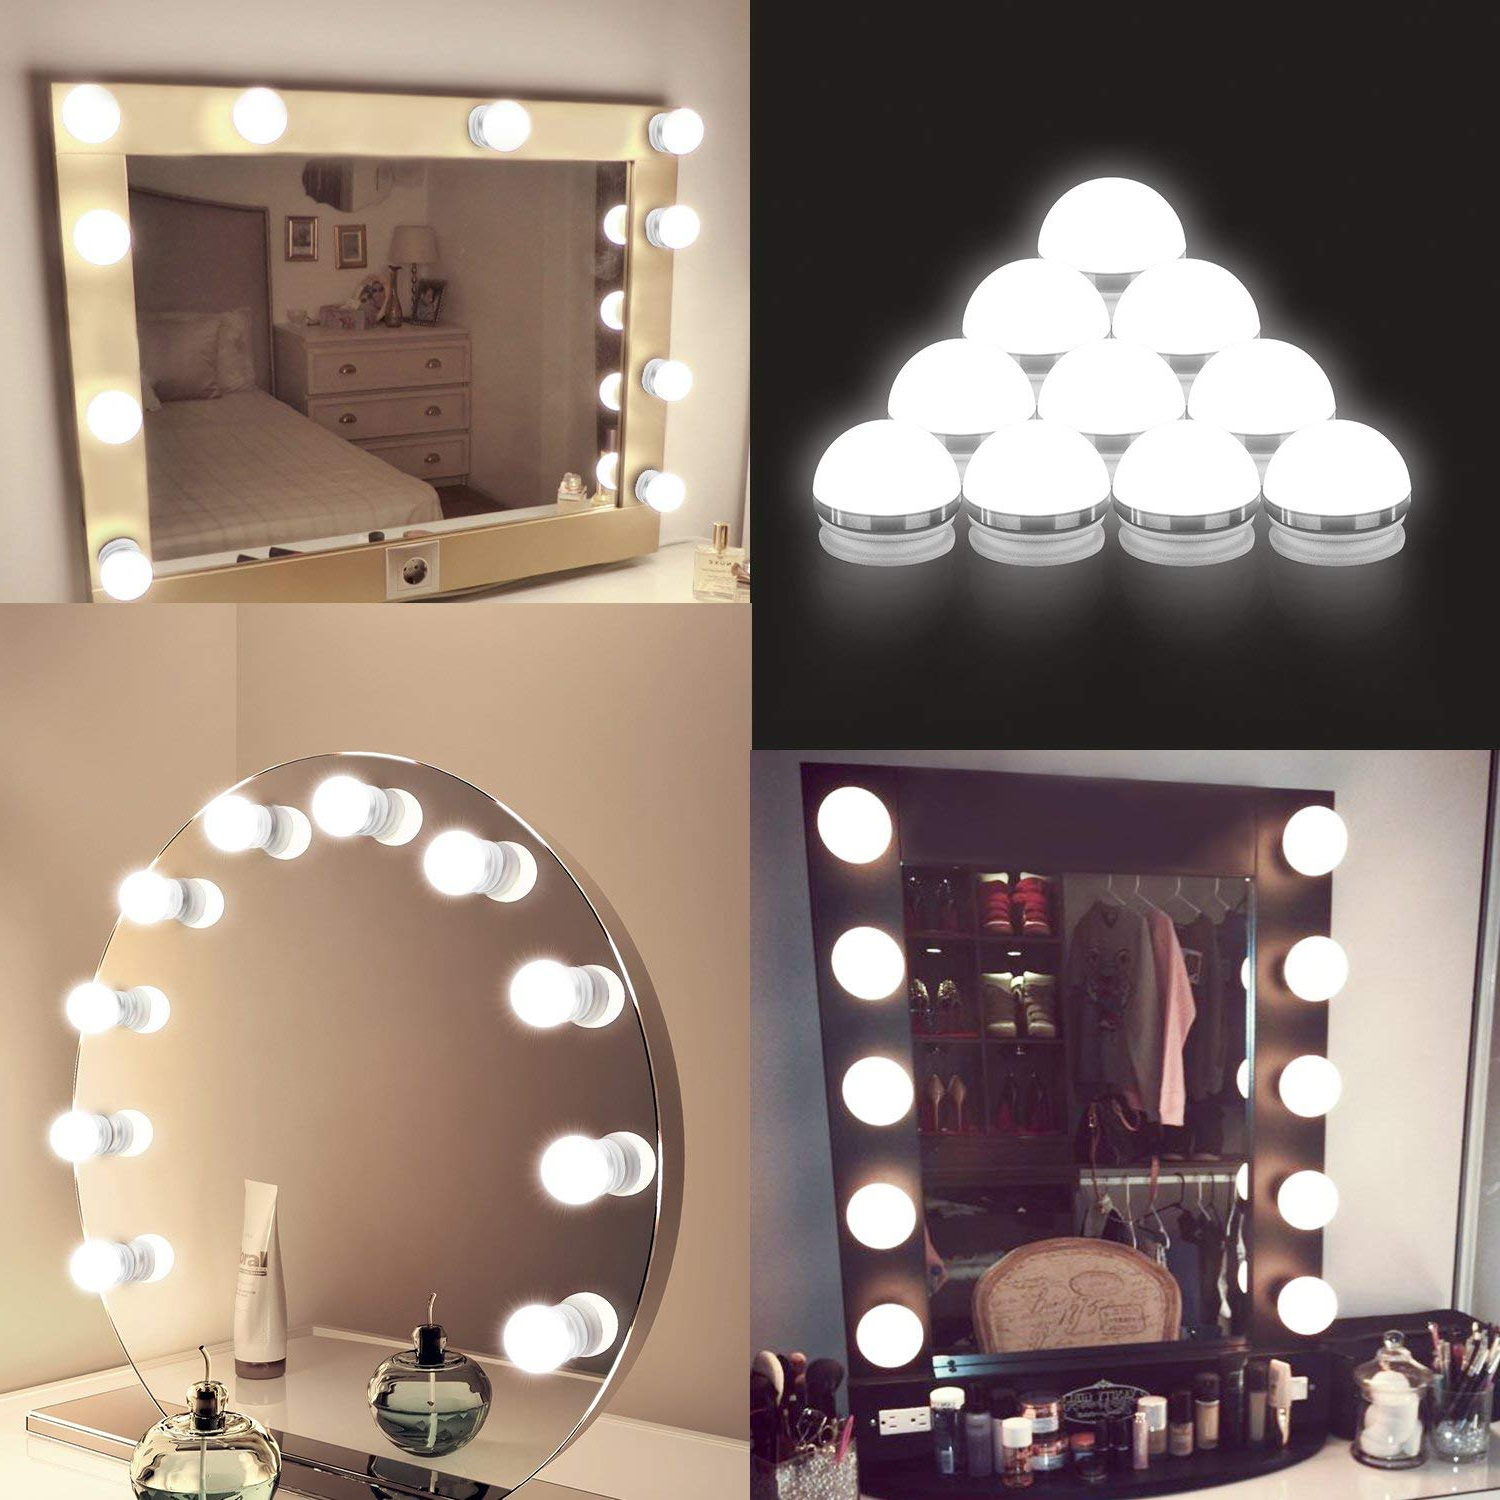 Coolmade Vanity Lights Kit Hollywood Style Makeup Light Bulbs With Stickers Attached To Bathroom Wall Or Dressing Table Mirrors, With Dimmable Switch Throughout Most Recent Wall Mirrors With Light Bulbs (View 9 of 20)